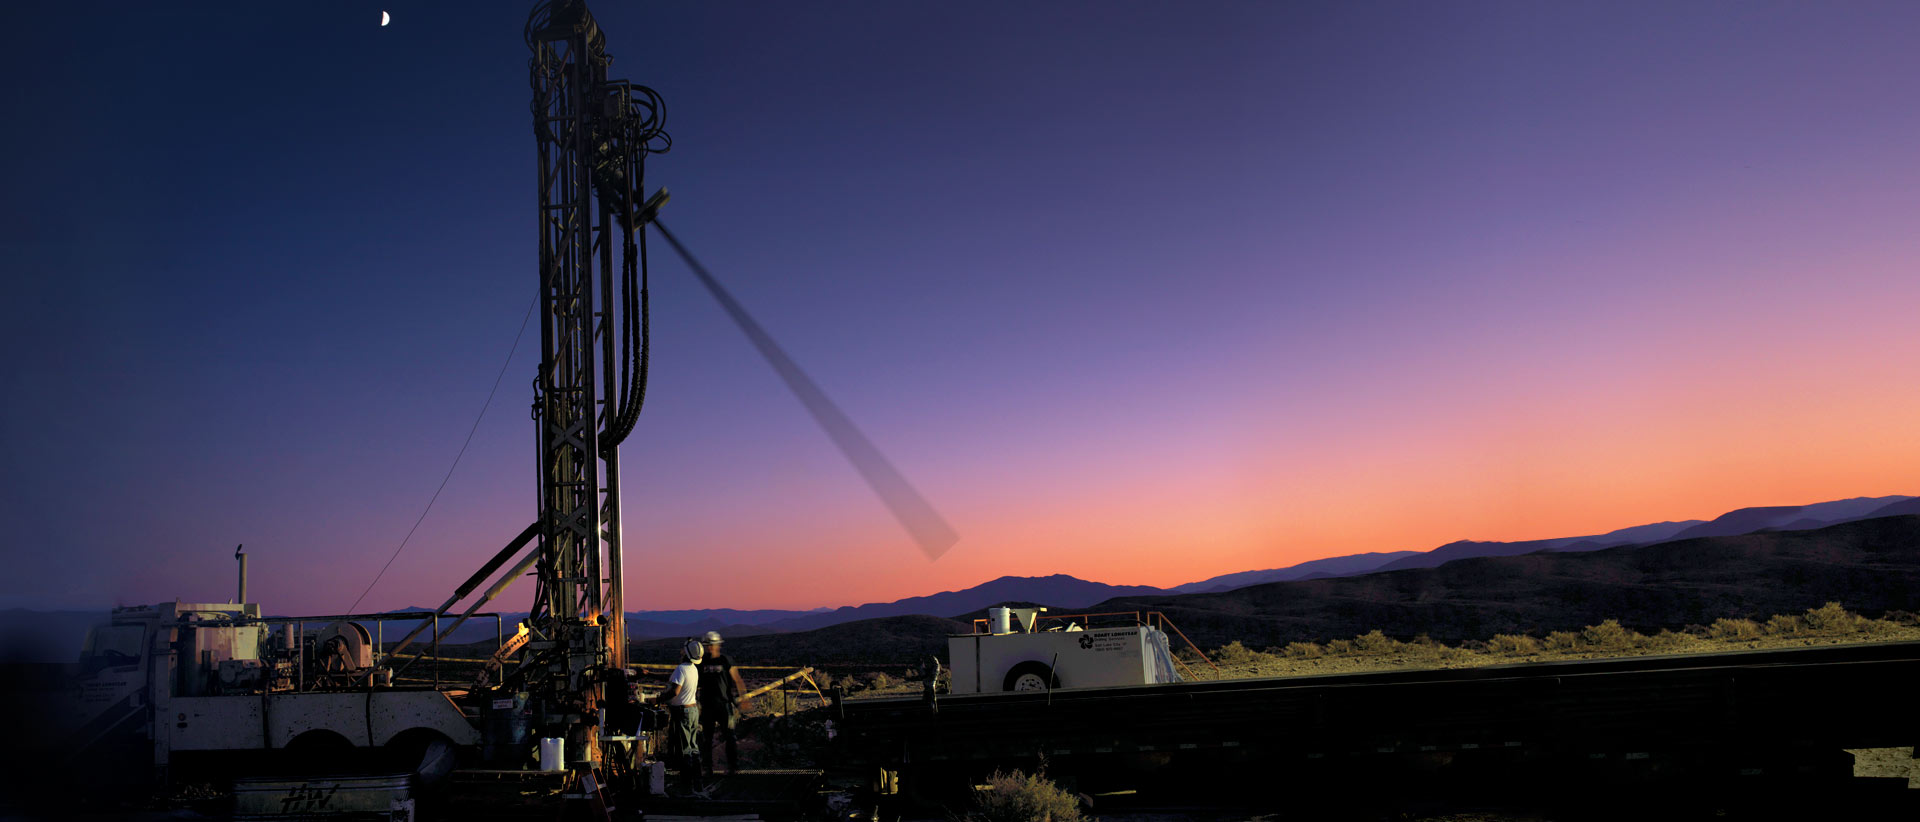 Nevada Copper has drilled over 400,000 feet of exploration holes since 2006.